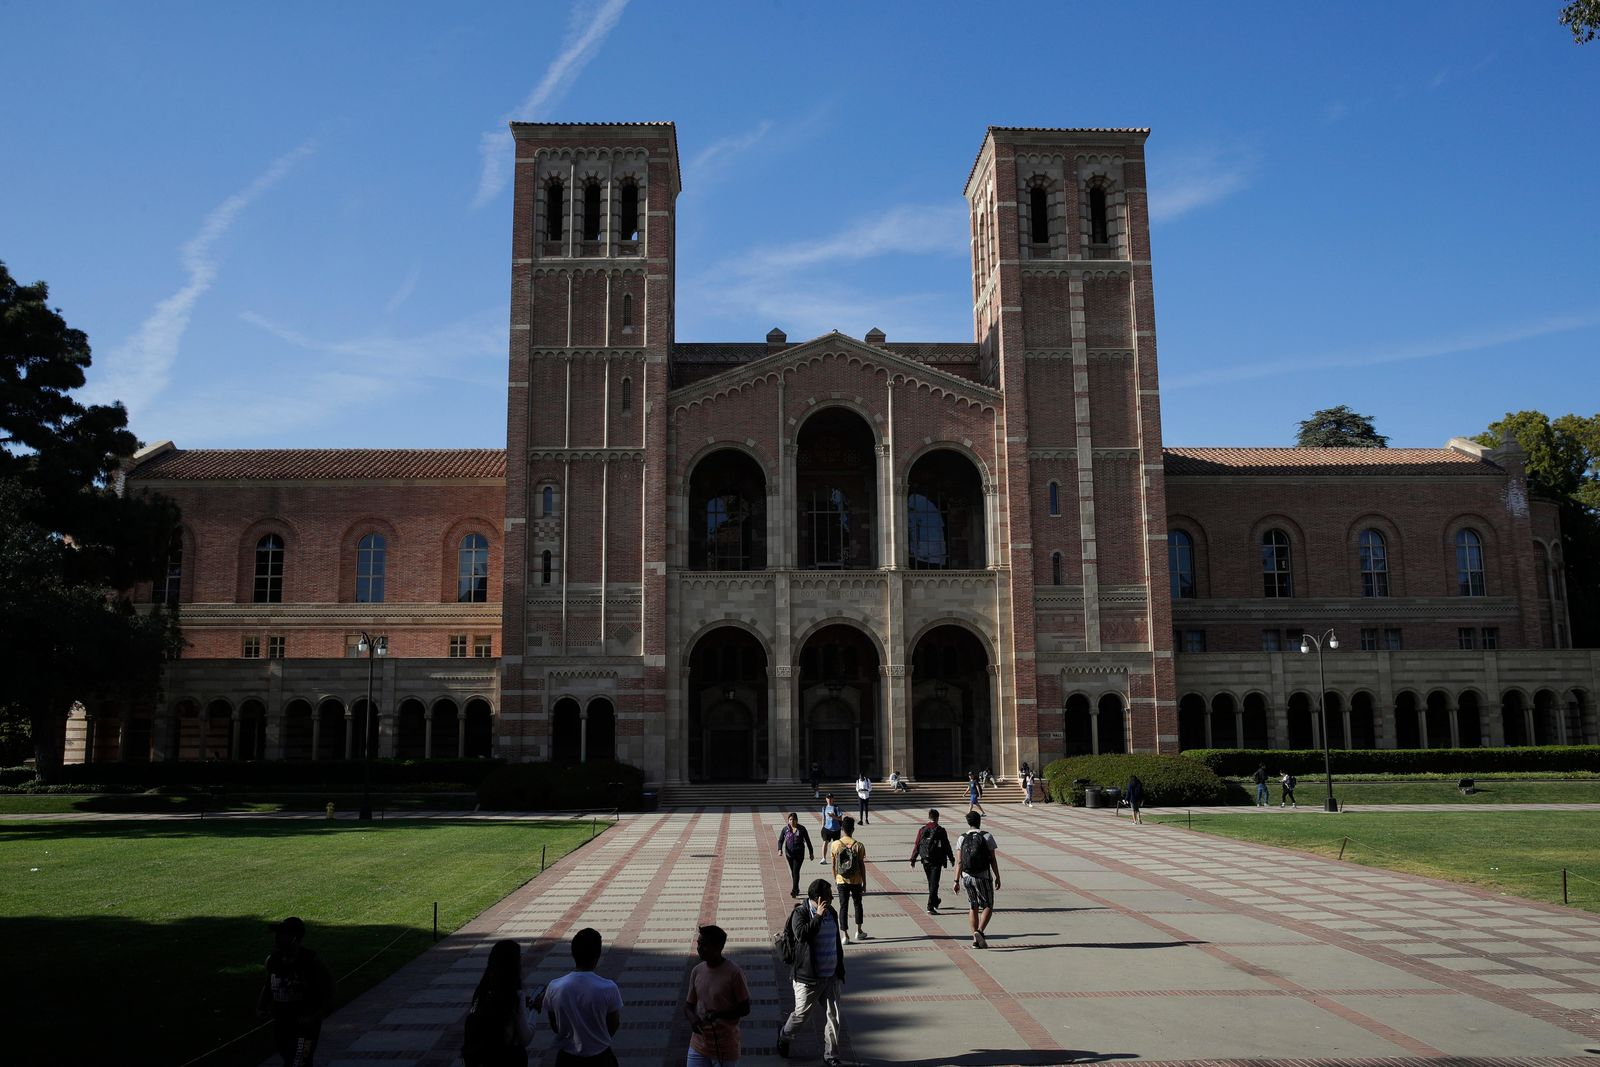 Students walk past Royce Hall at the University of California, Los Angeles Thursday, April 25, 2019, in the Westwood section of Los Angeles. (AP Photo/Jae C. Hong)